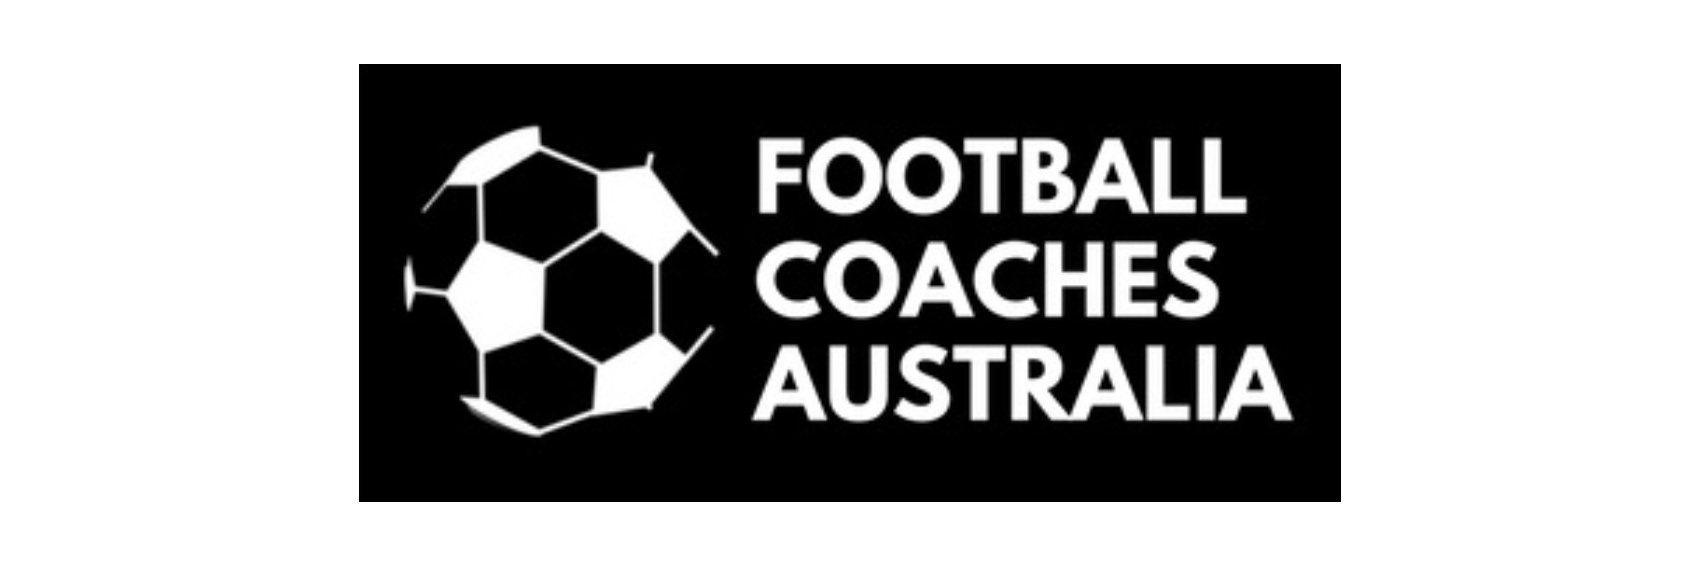 A-League coaches campaign for job security